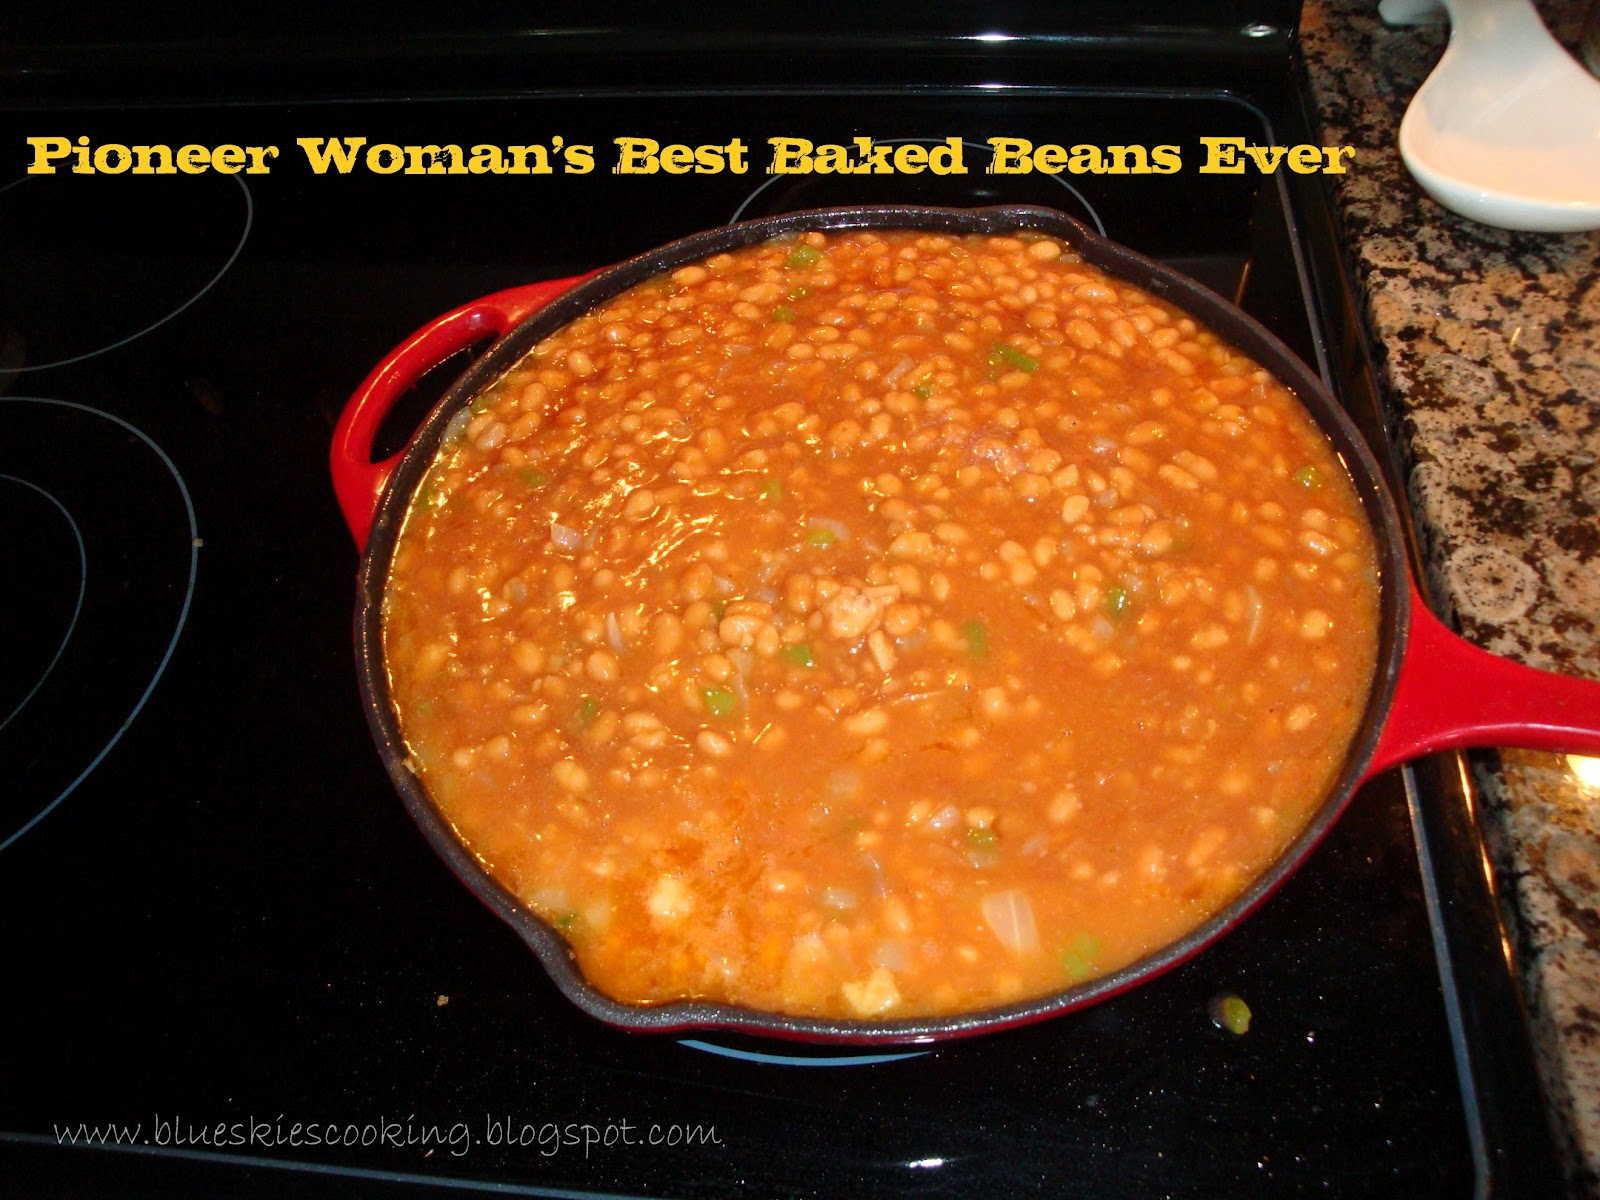 Tastefully Done: Pioneer Woman's Best Baked Beans Ever